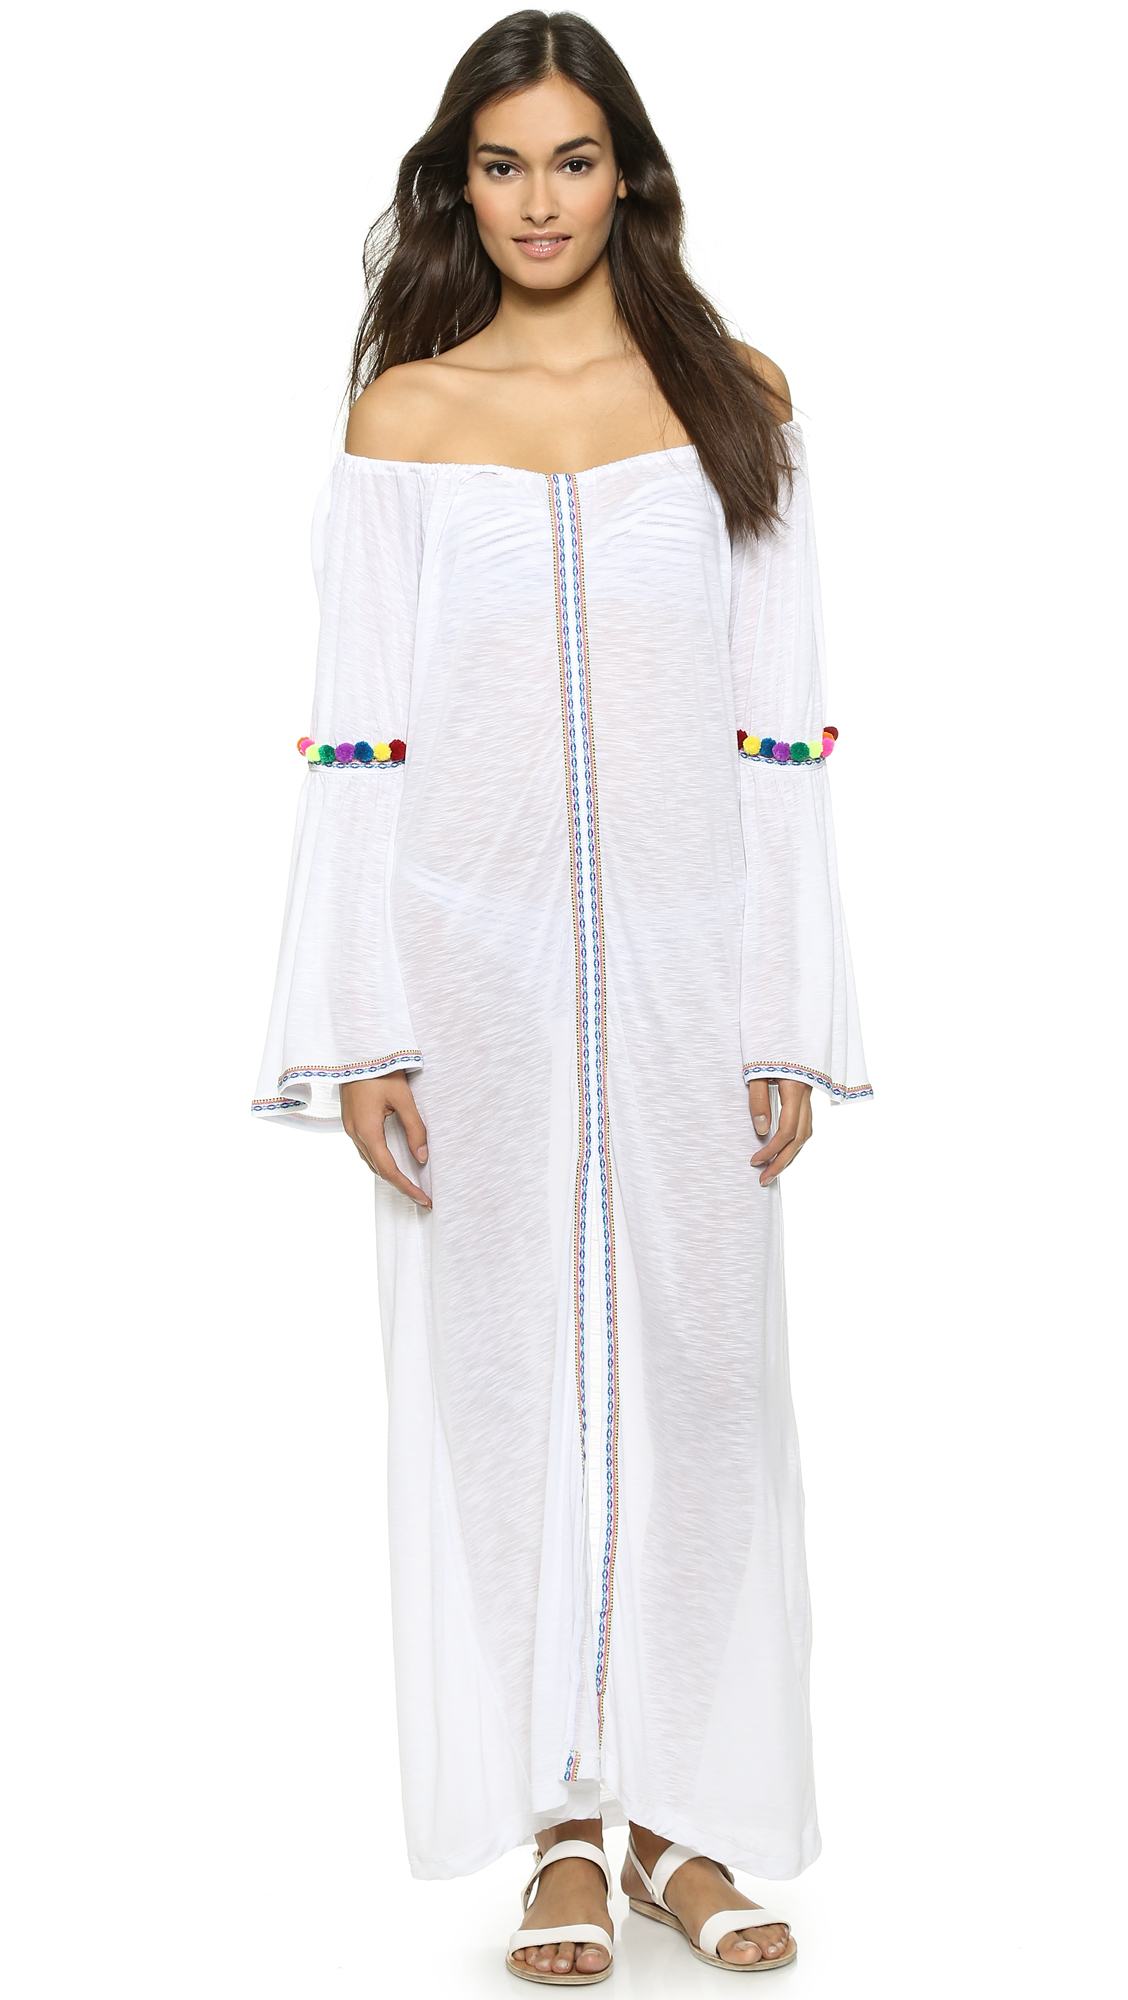 Pitusa Gypsy Maxi Dress - White